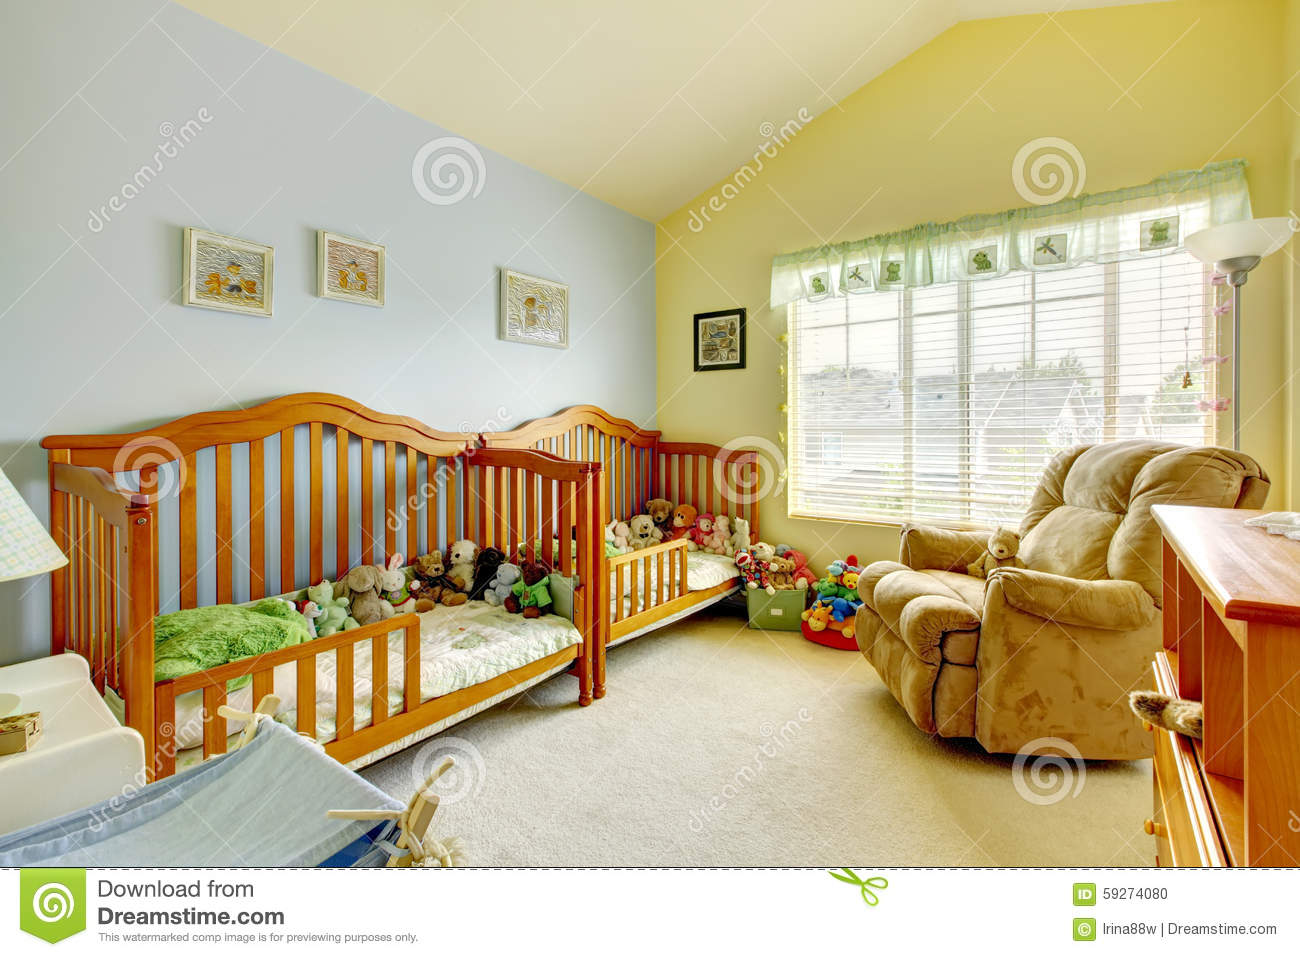 Nursery Room With Two Cribs For Twins And Lots Of Toys